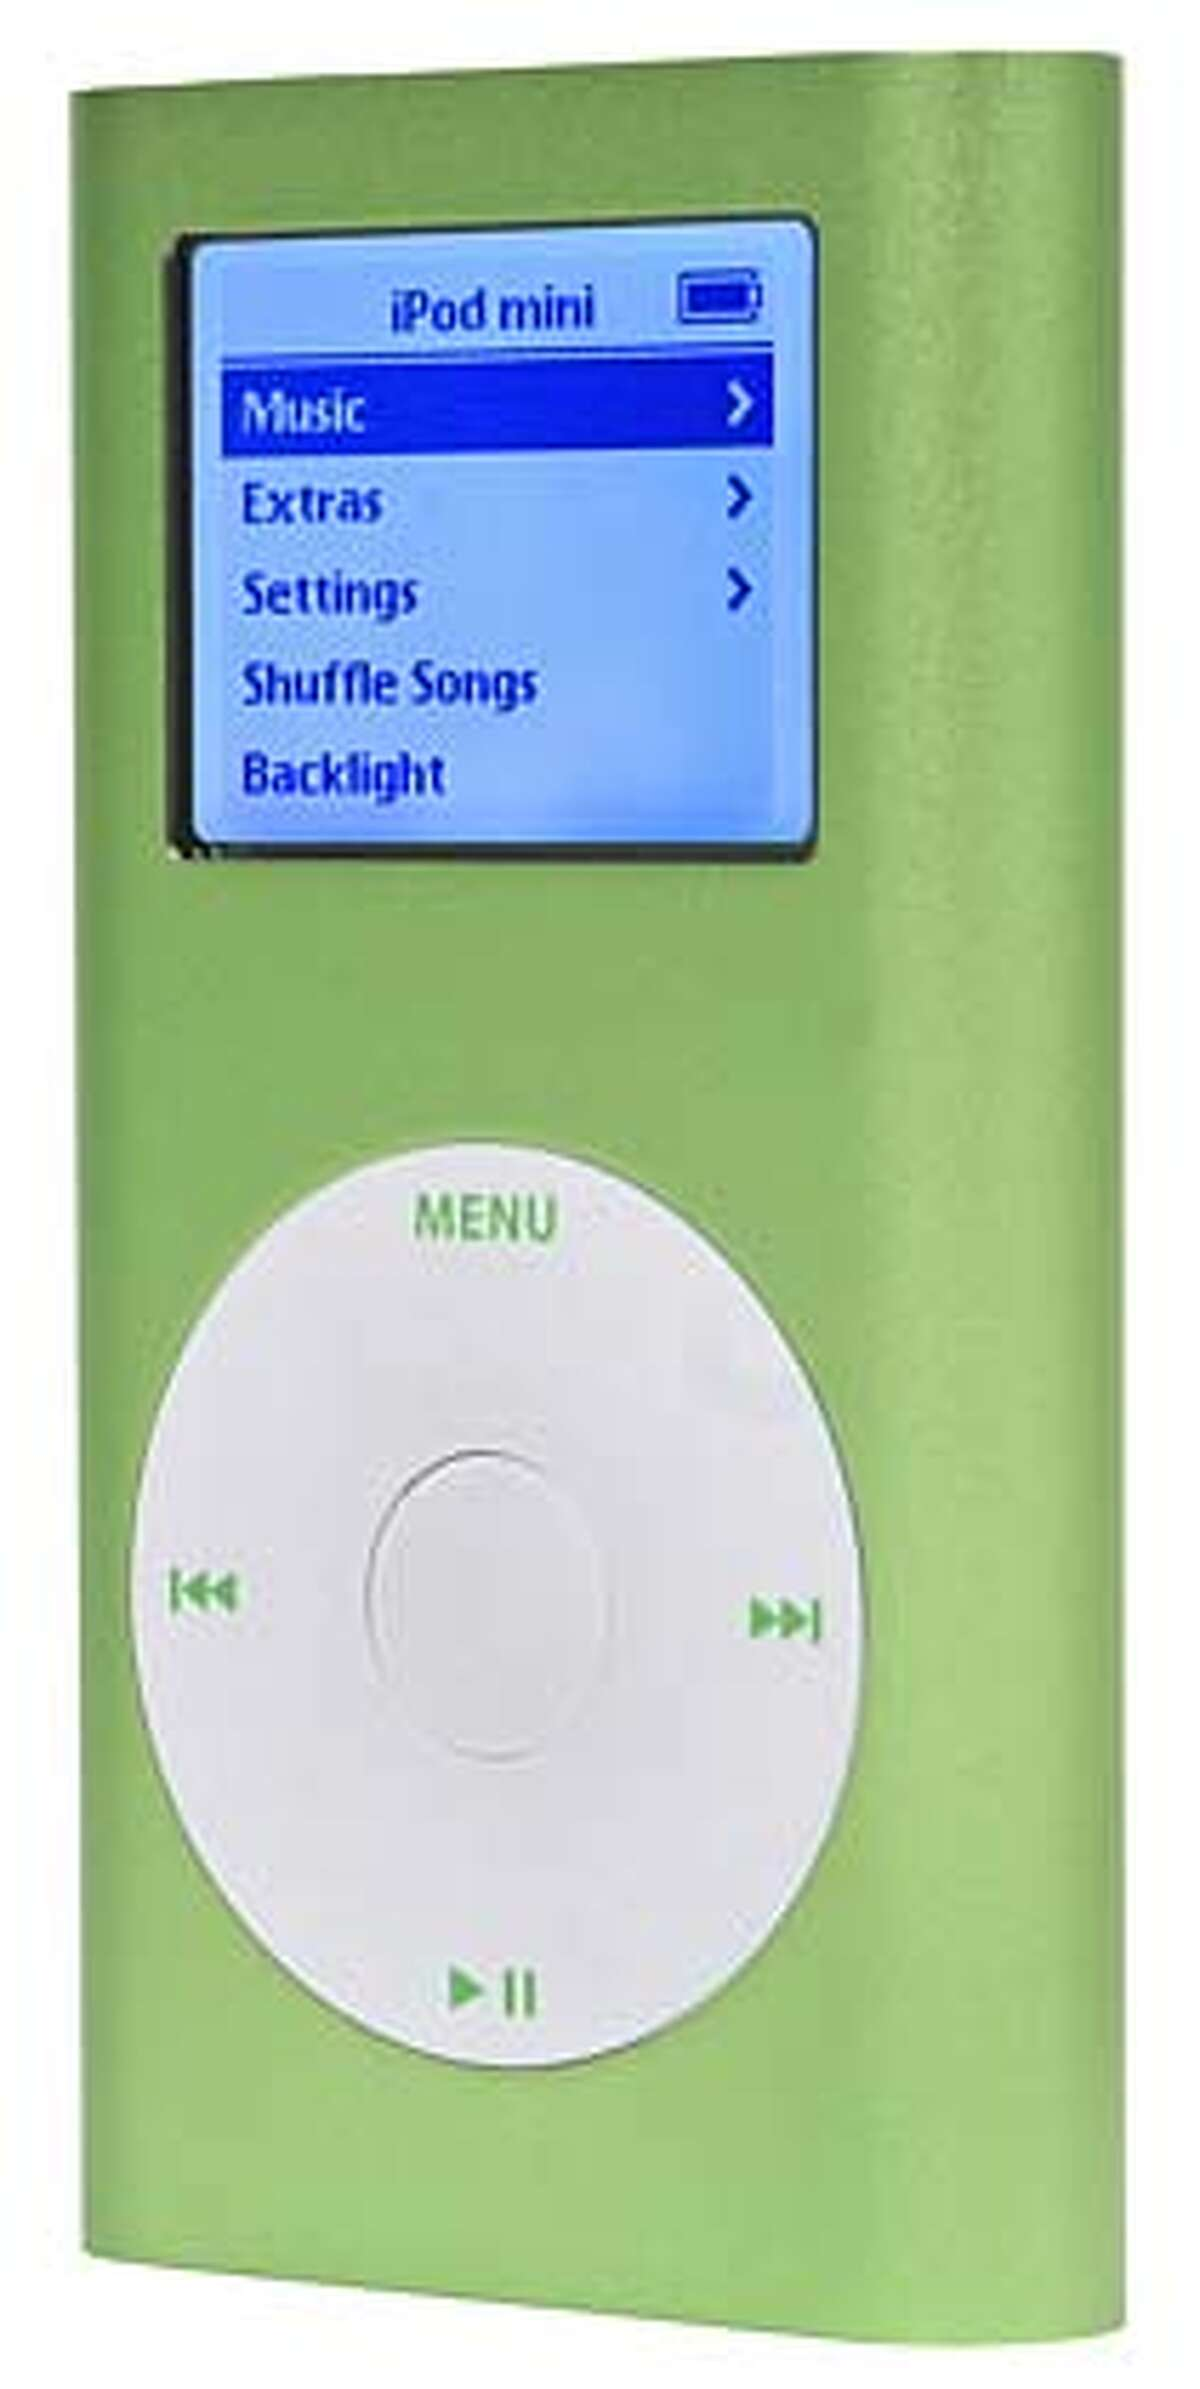 MP3 players that won't poop out, Apple iPod Mini. Ran on: 07-11-2005